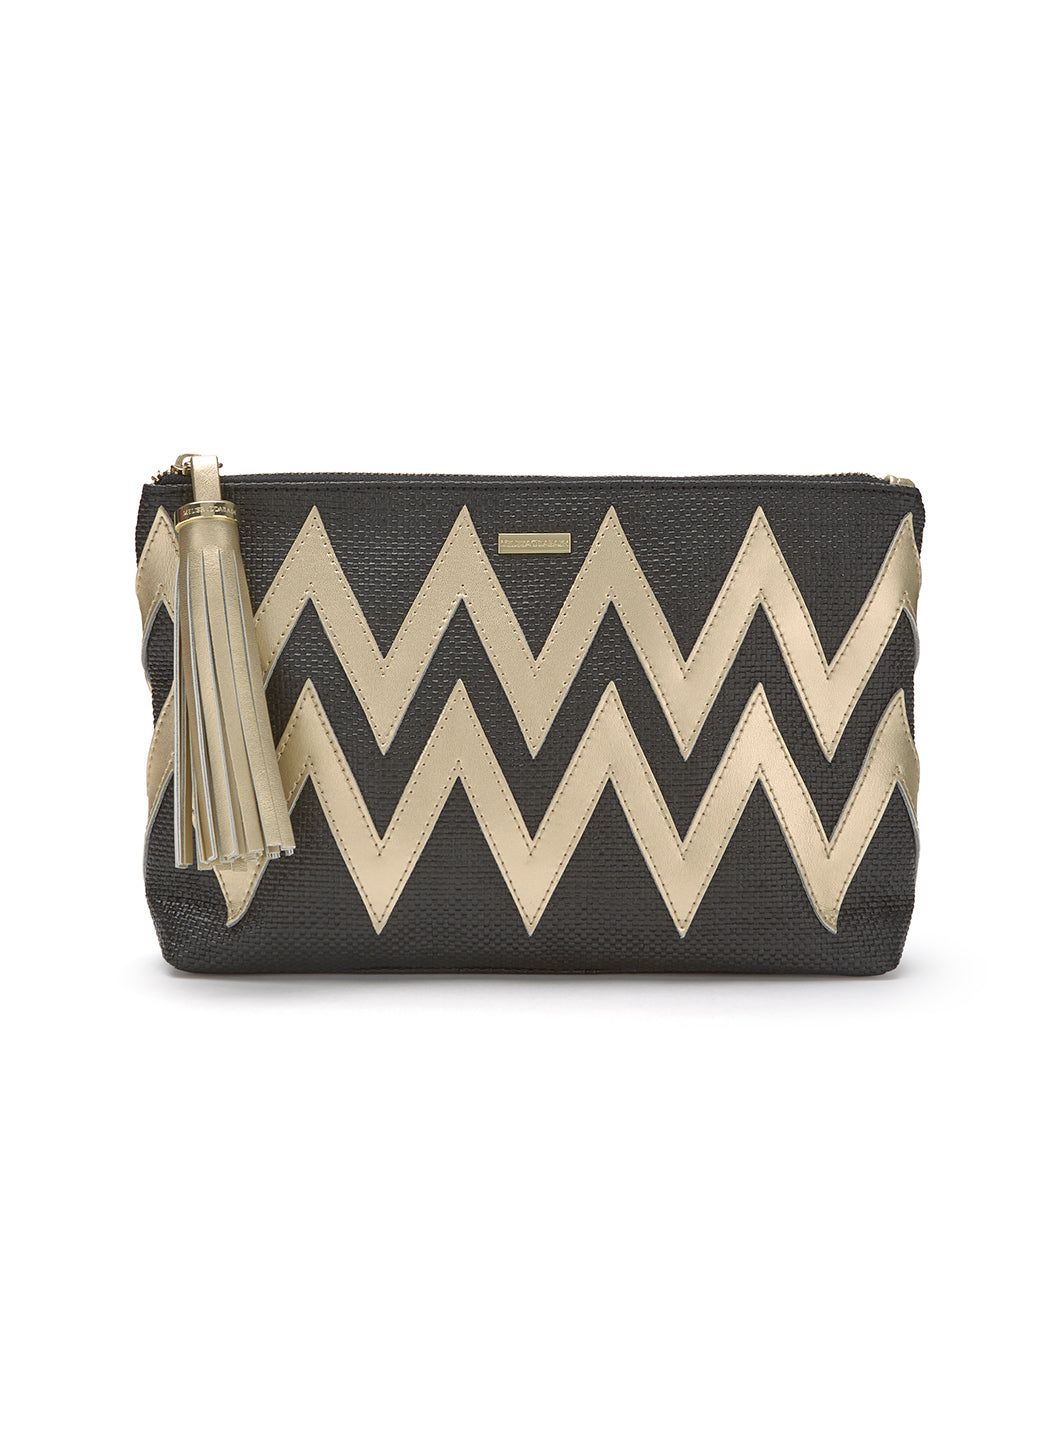 Crete Zigzag Clutch Black Gold